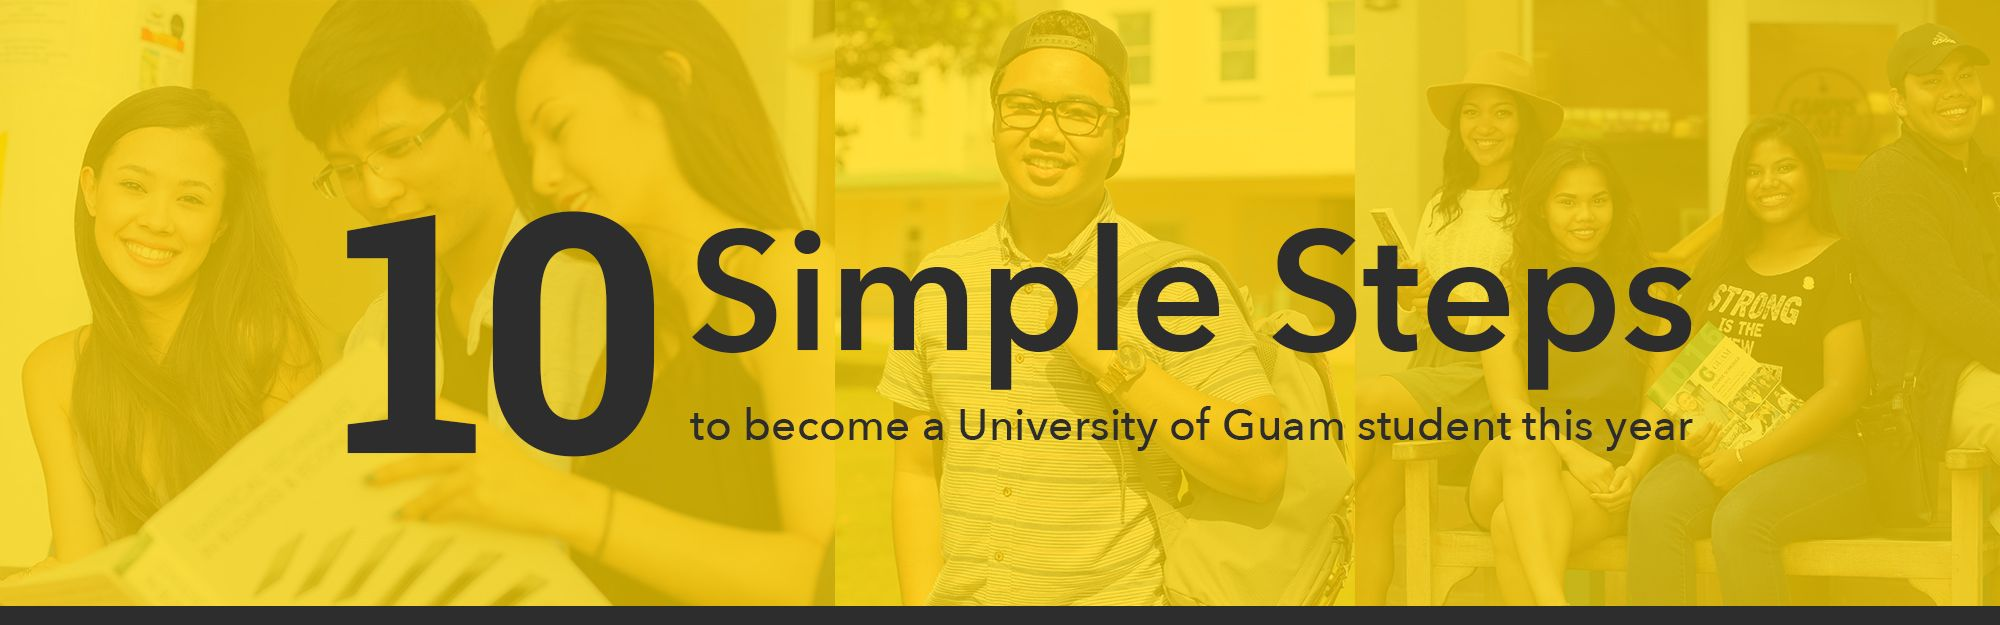 10 simple steps to become a University of Guam student this year